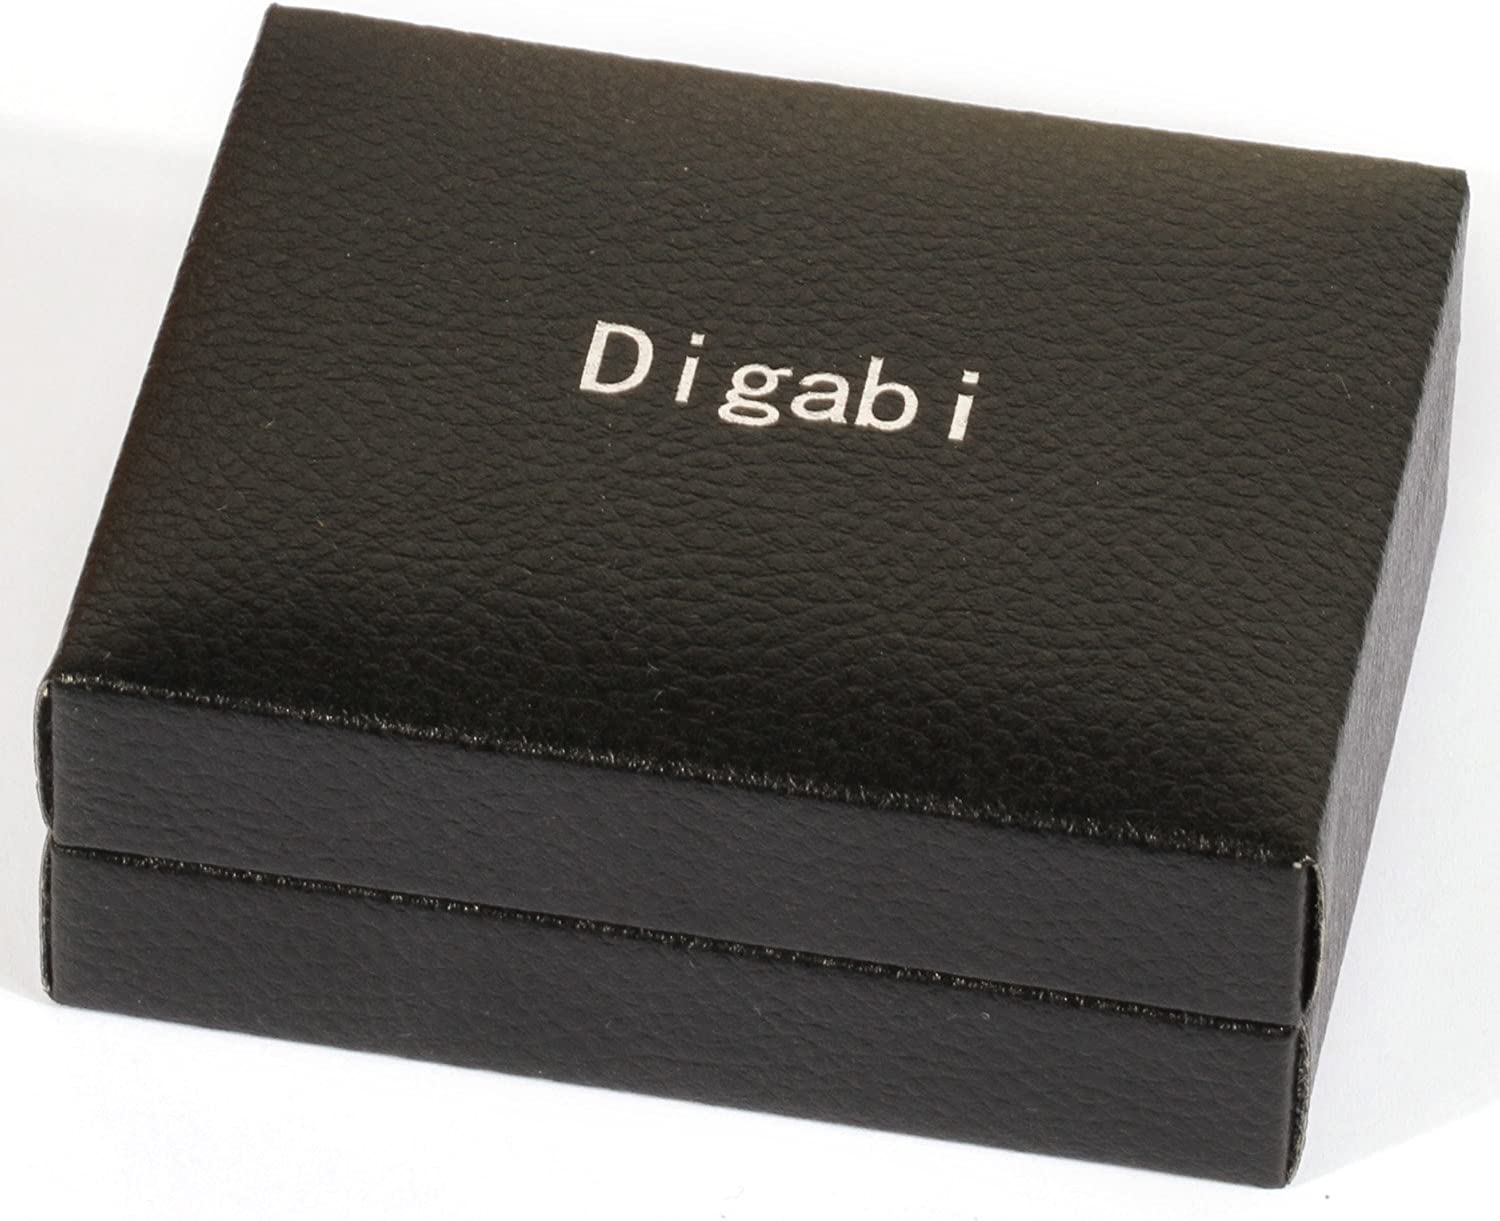 Digabi Plated Platinum Rectangular Tie Clip and Cufflinks Set Color Silver with Nice Box